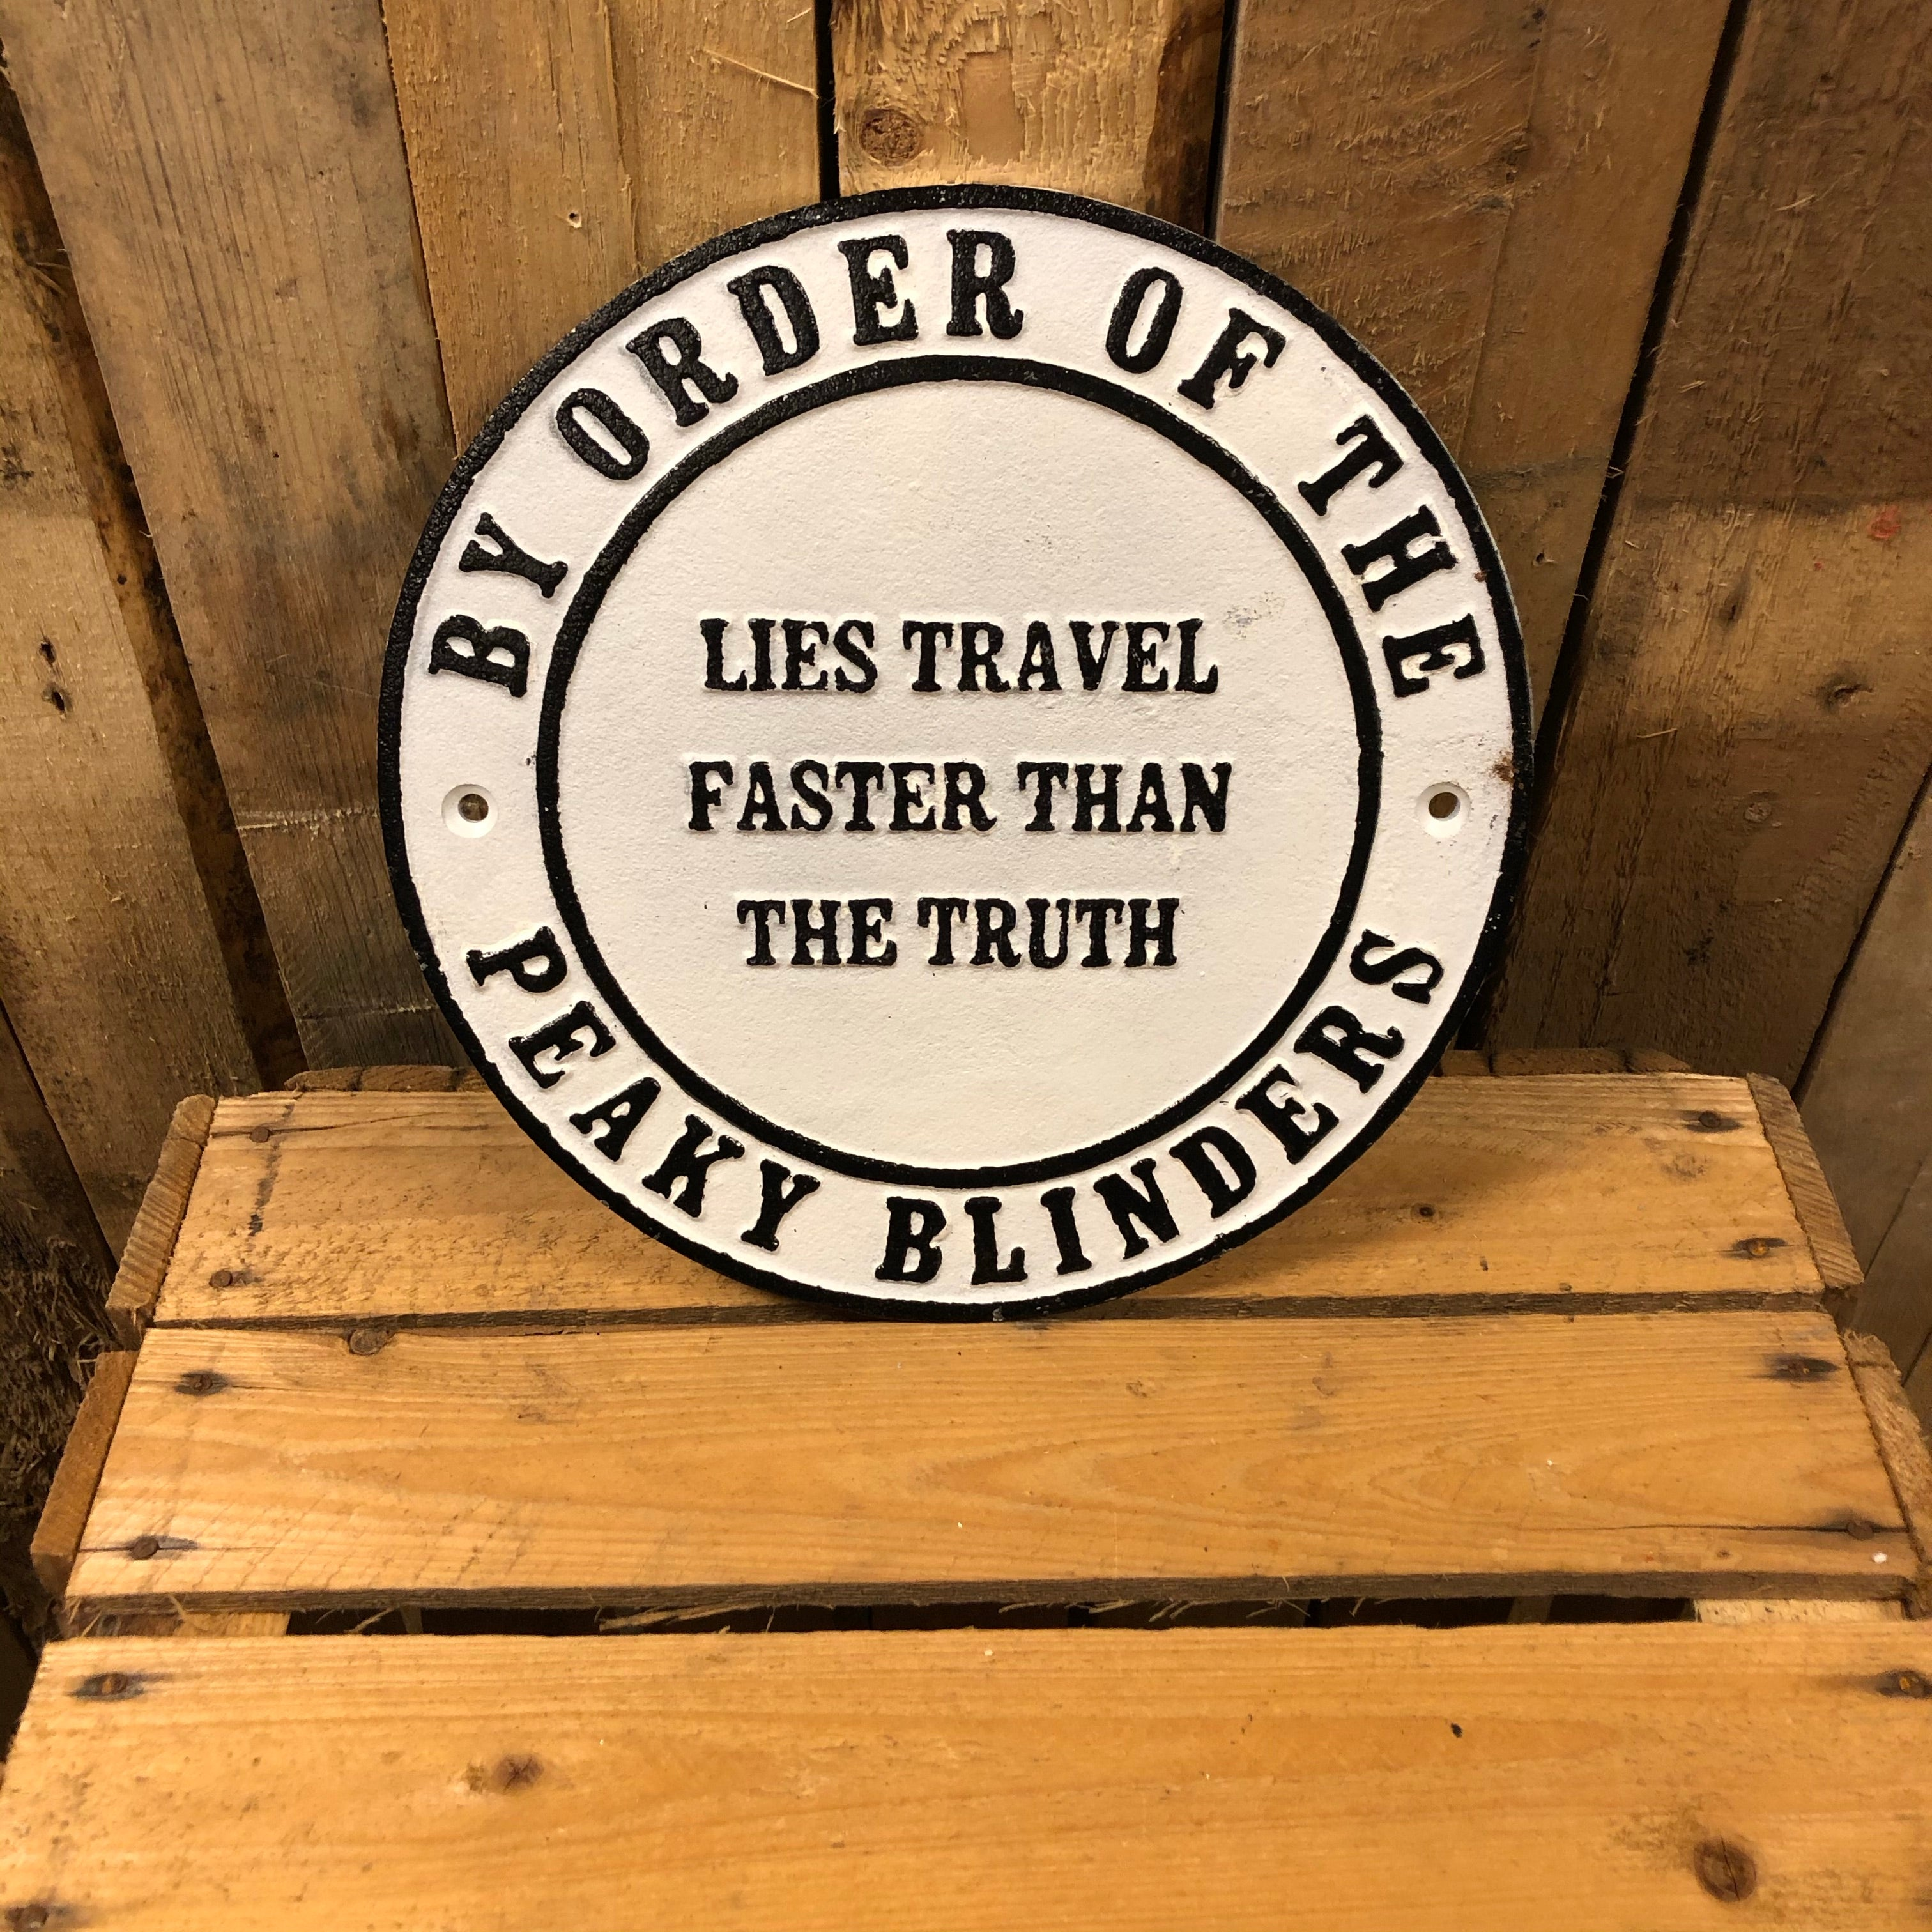 Peaky blinders heavy cast iron sign Lies travel faster than the truth